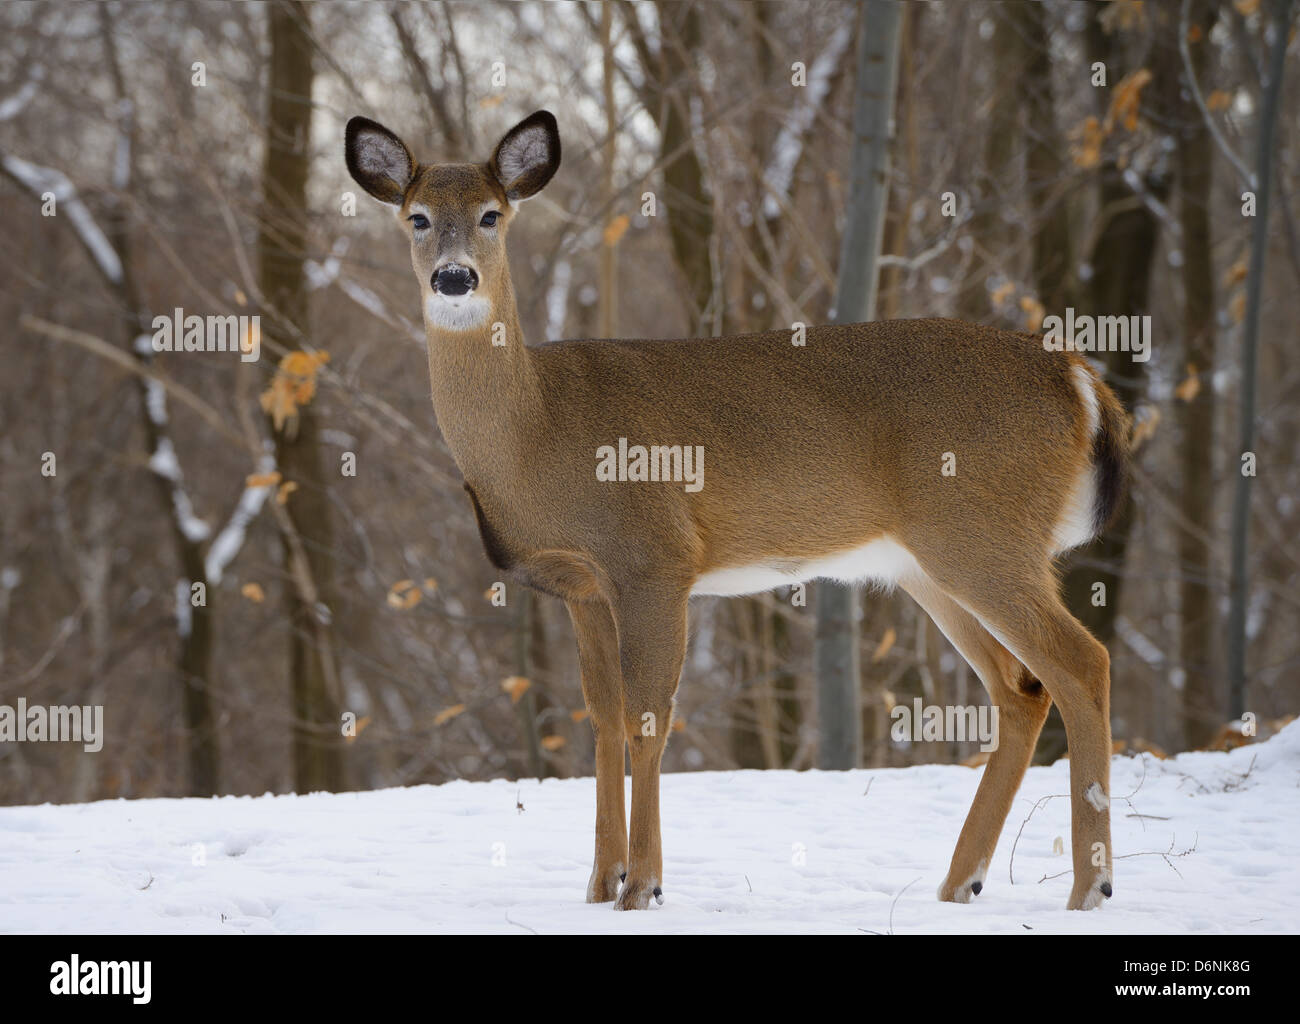 Alert female White Tailed Deer in a Toronto Ontario Canada backyard forest in winter - Stock Image